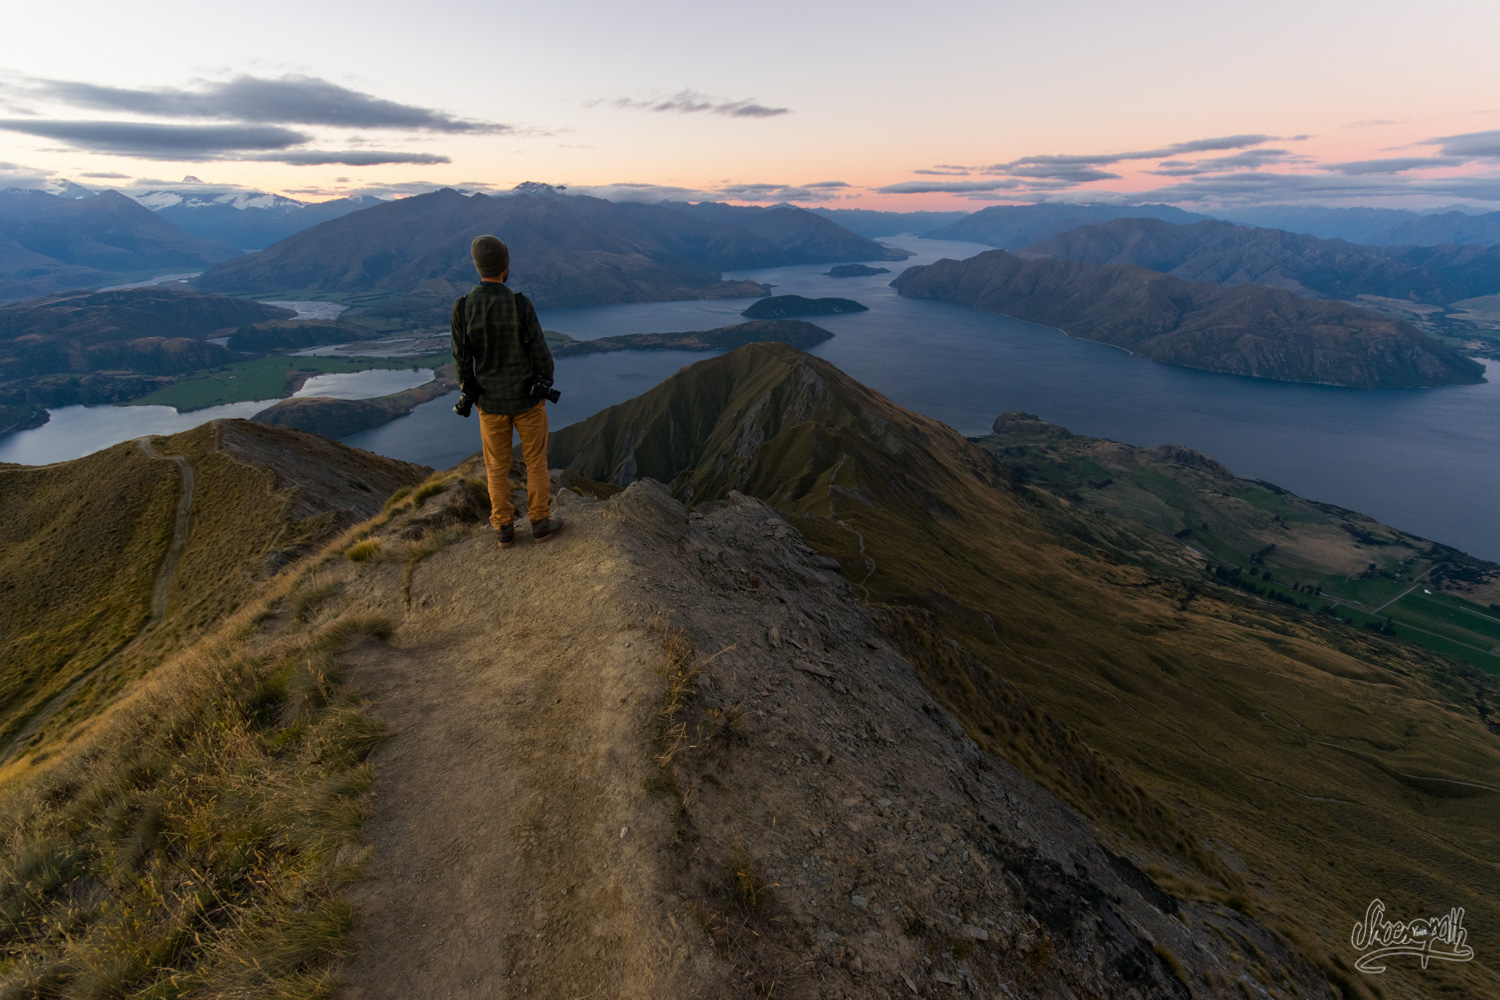 Johan, looking at the last rays of sun over Lake Wanaka from Roys Peak